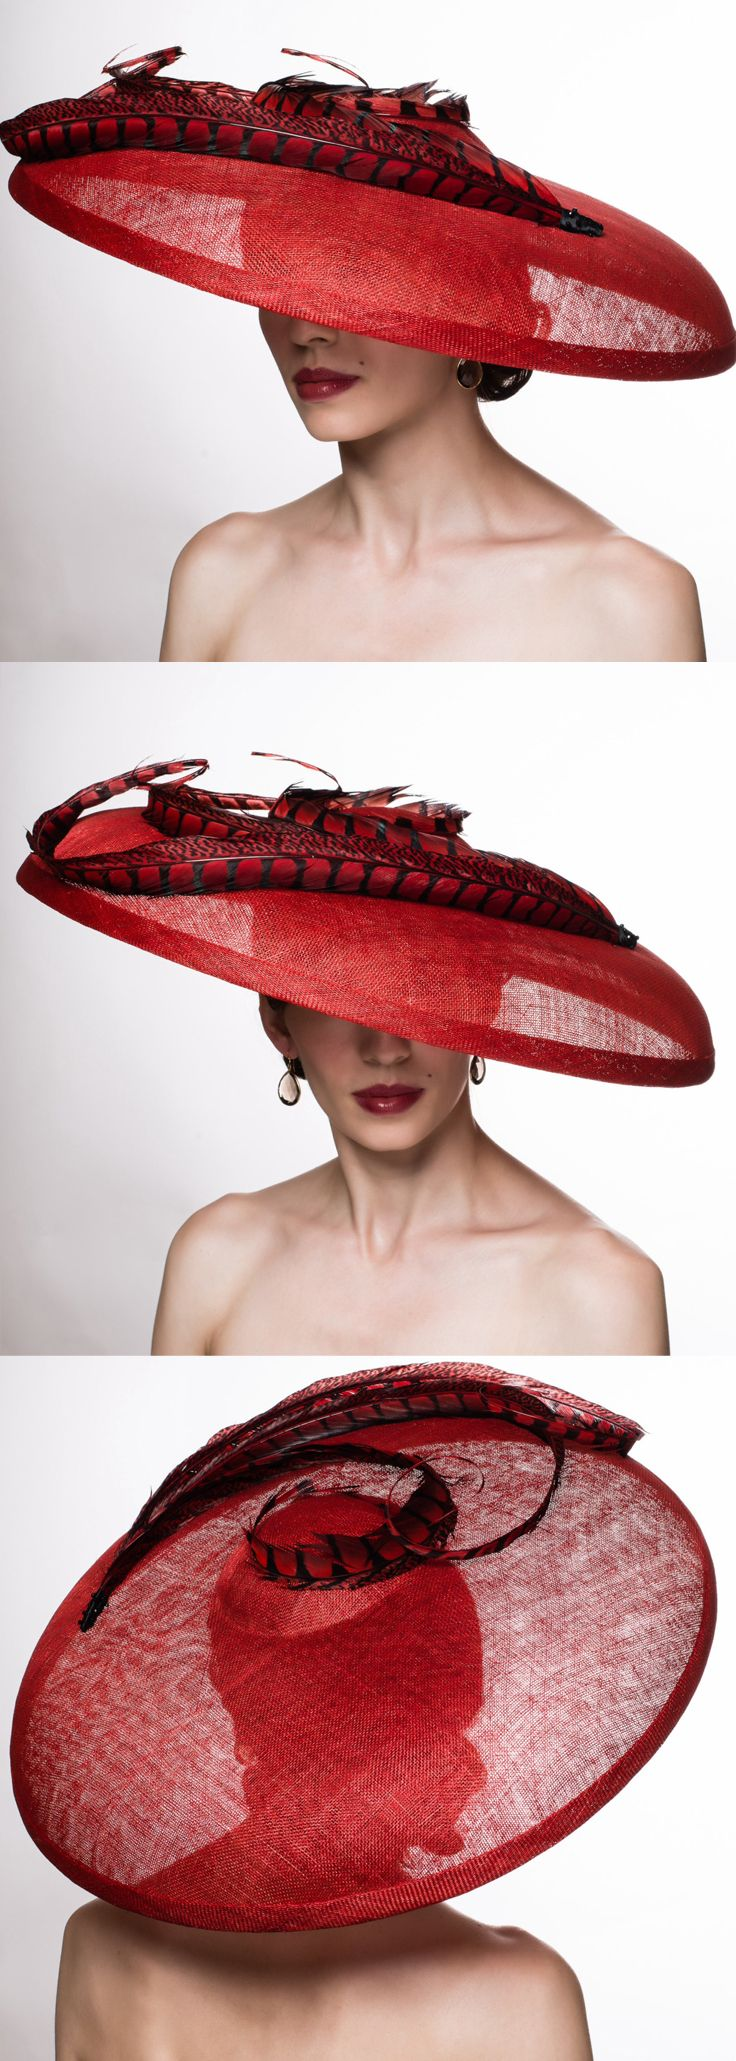 Large Bright Cherry Red Downturned Pheasant Trimmed hat. Super Super Fun for a spring summer Mother of the bride, or outfit for day at the races, royal ascot, kentucky derby, epsom derby. Aintree, Ascot Ladies Day outfits. Outfit inspiration Day at the Races, weddings. Wedding Outfits #weddings #fashion #racingfashion #kentuckyderby #royalascot #ladiesday #bighats #derbyoutfits #outfits #derbyhats #affiliatelink #outfitideas #weddingguest #passion4hats #racingfashion